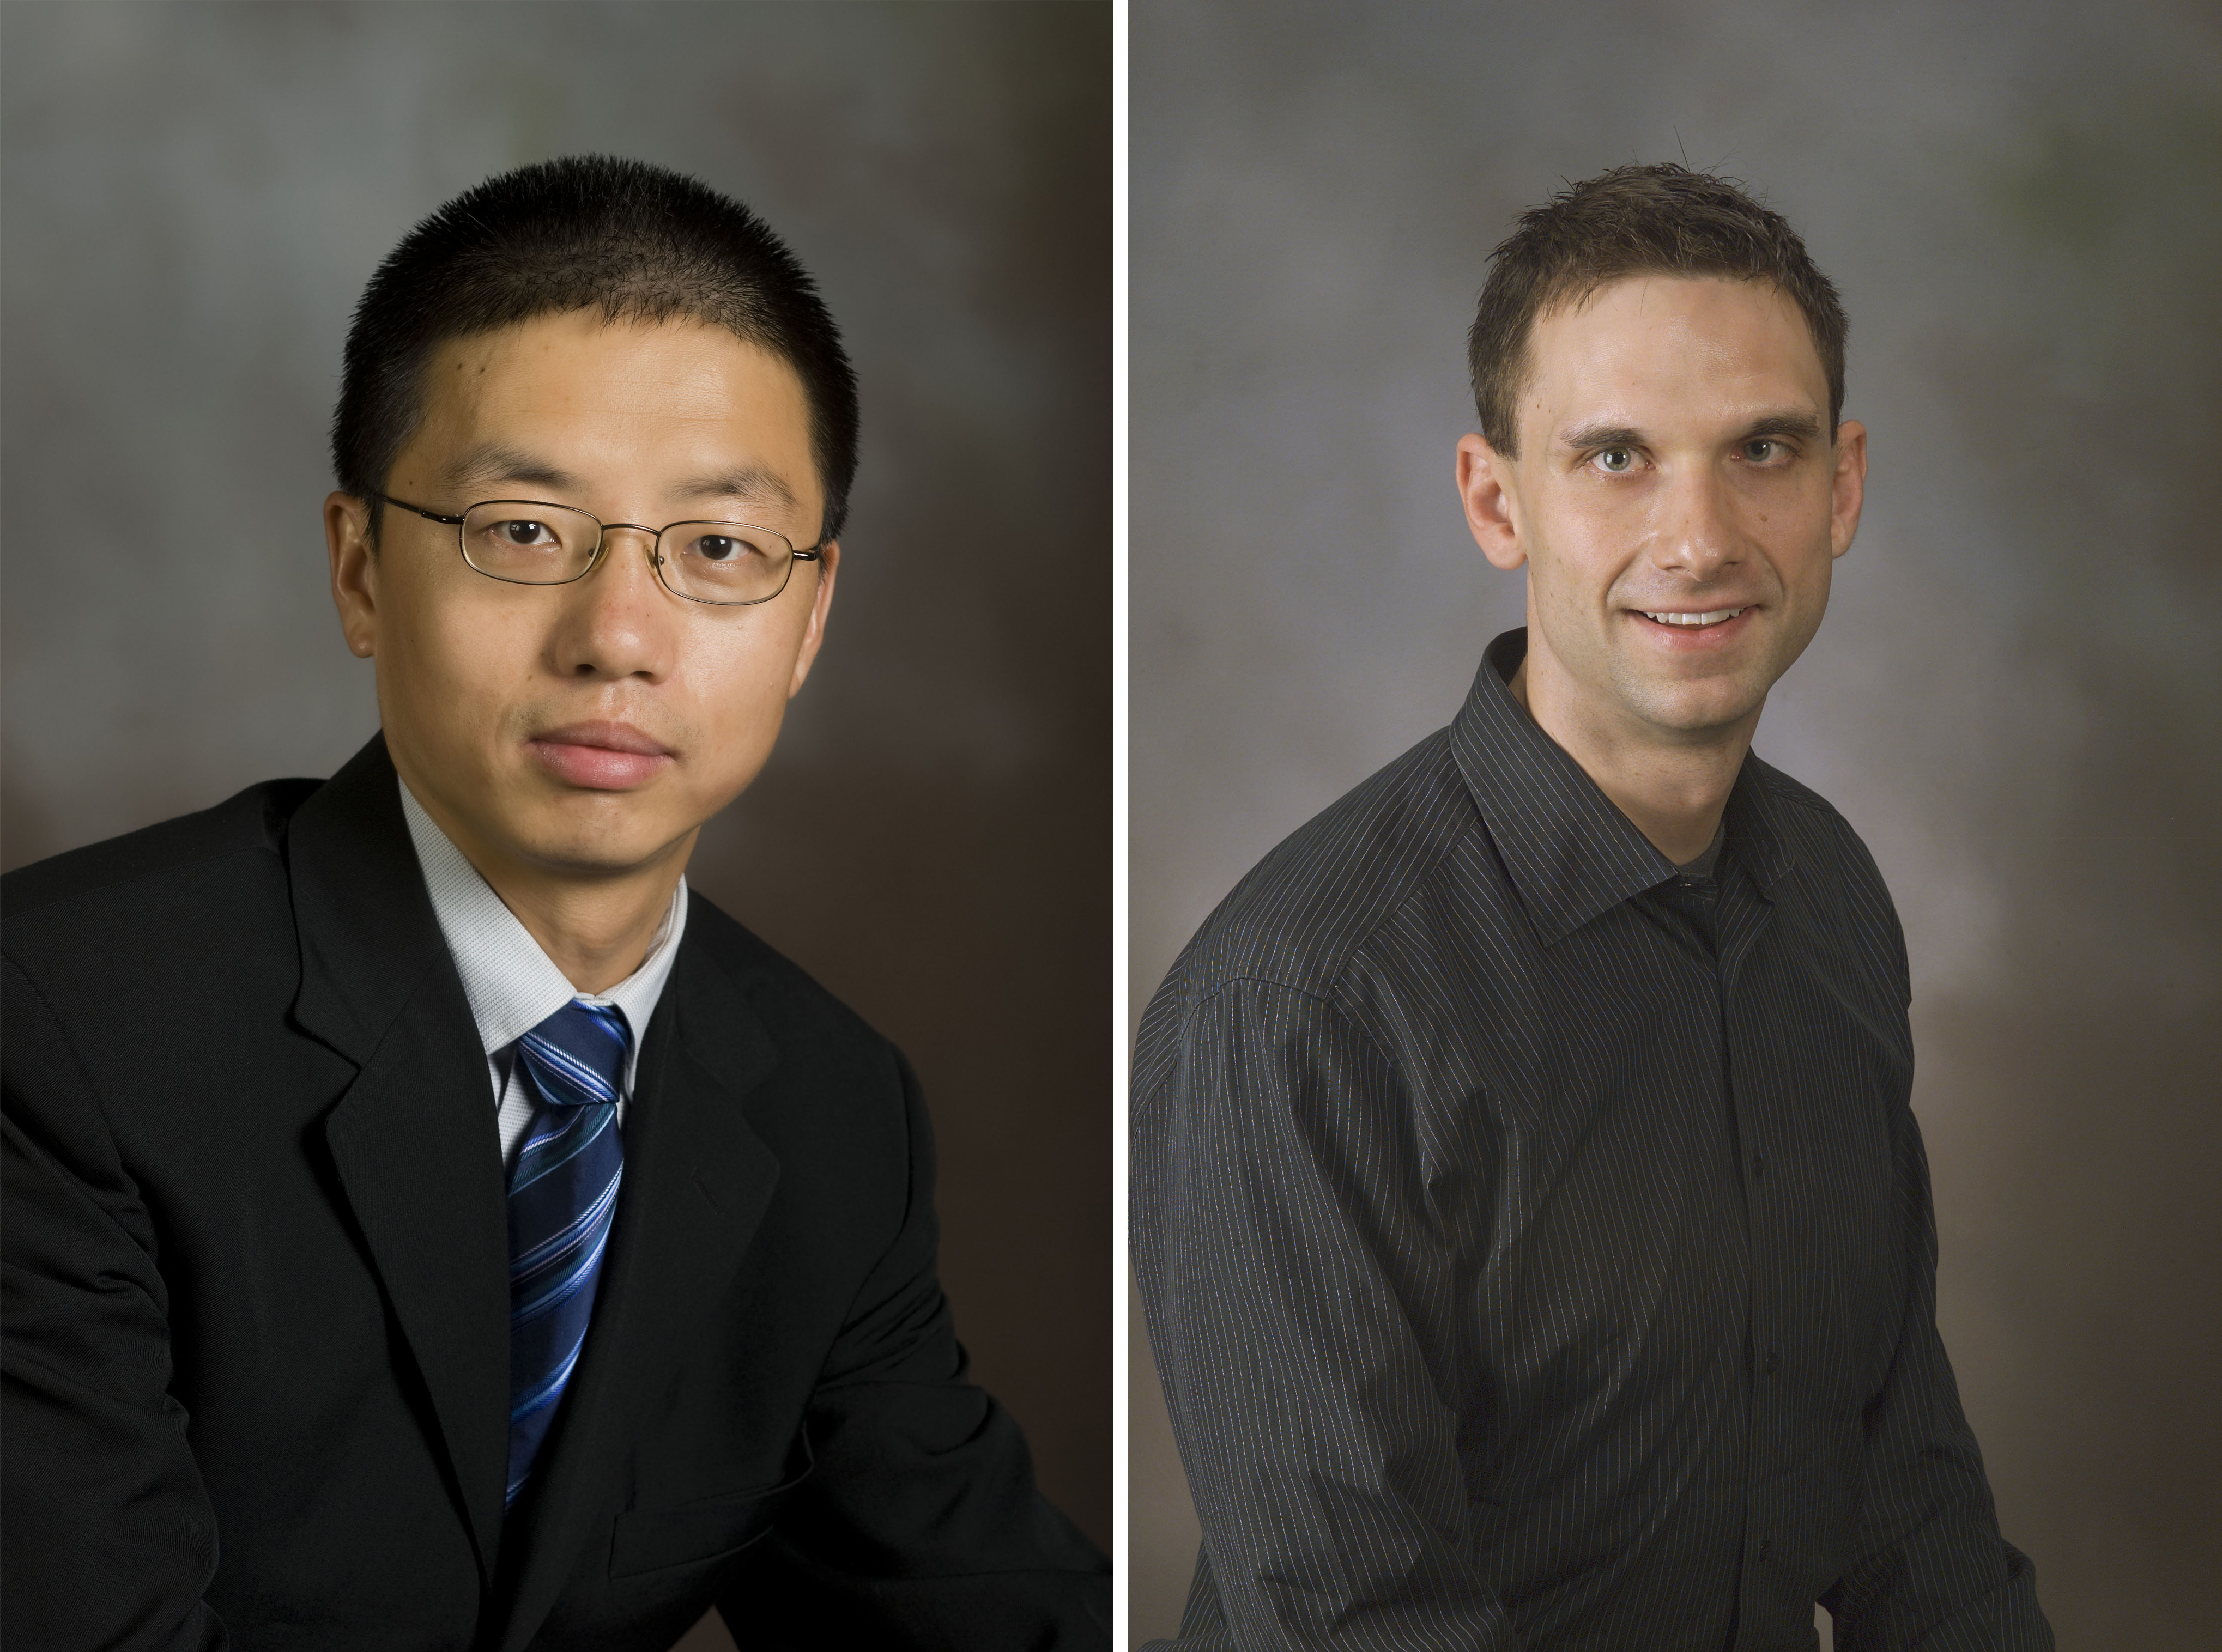 Zhang (left) and Roberts